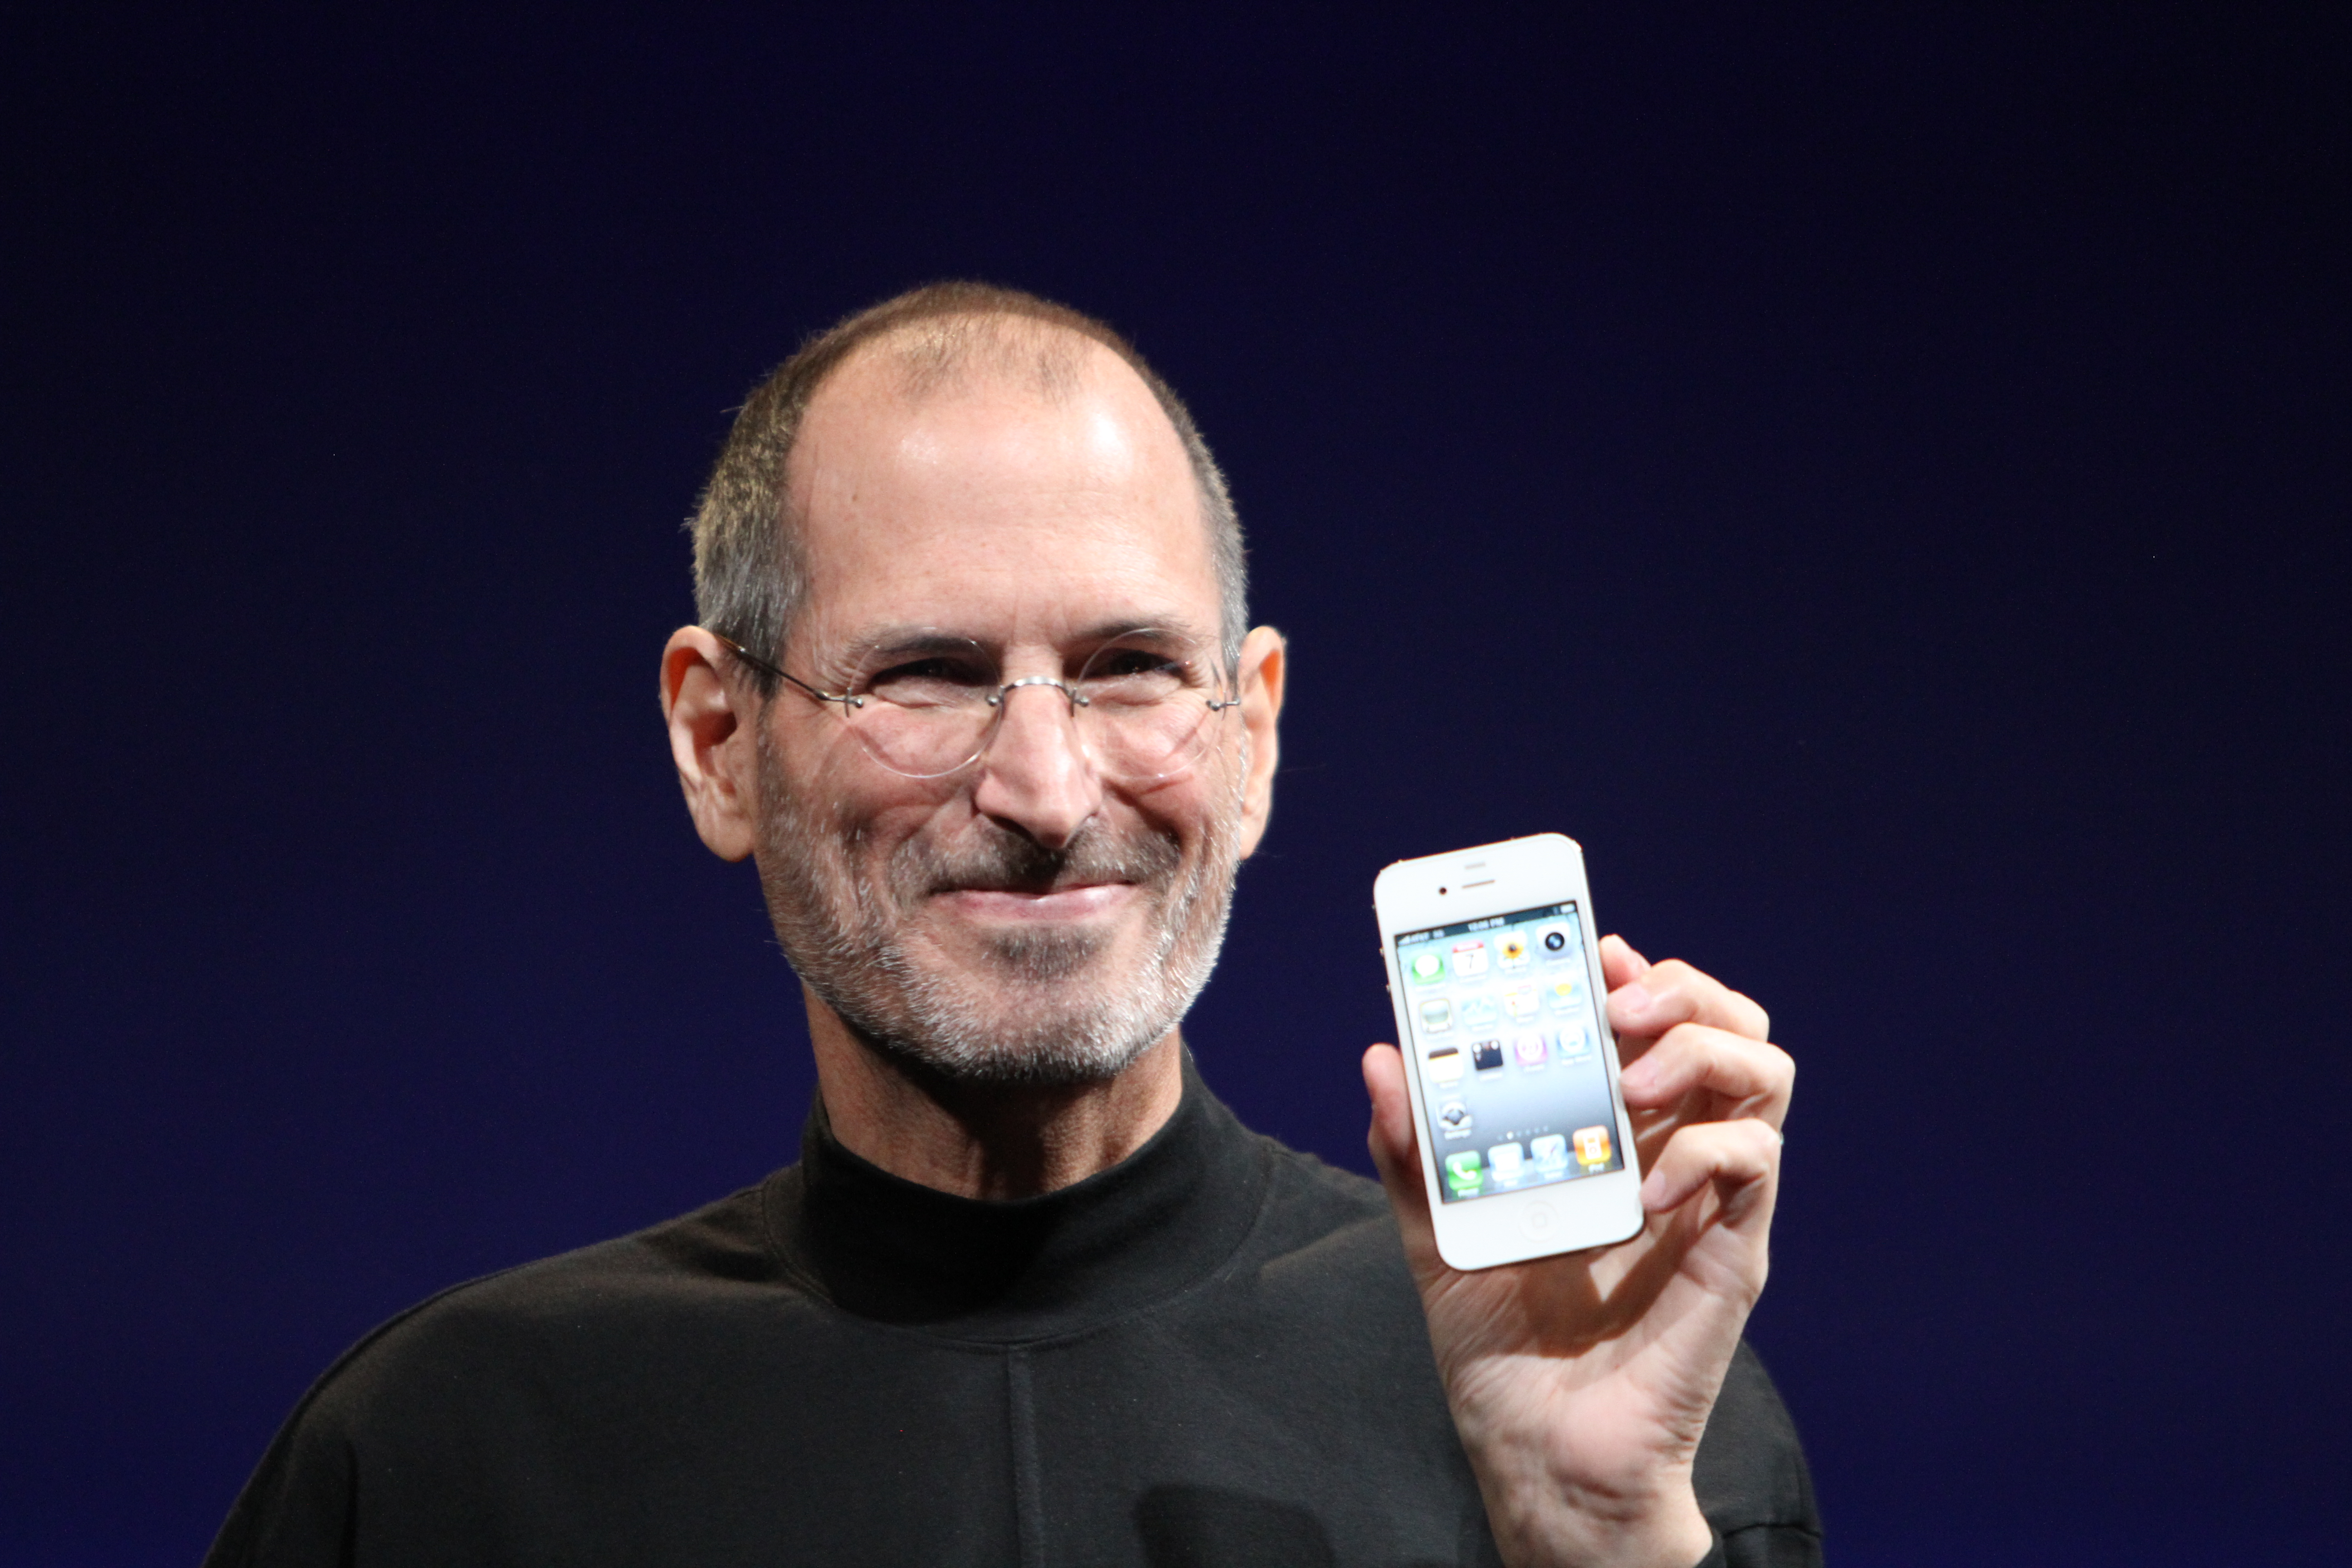 Description Steve Jobs Headshot 2010.JPG